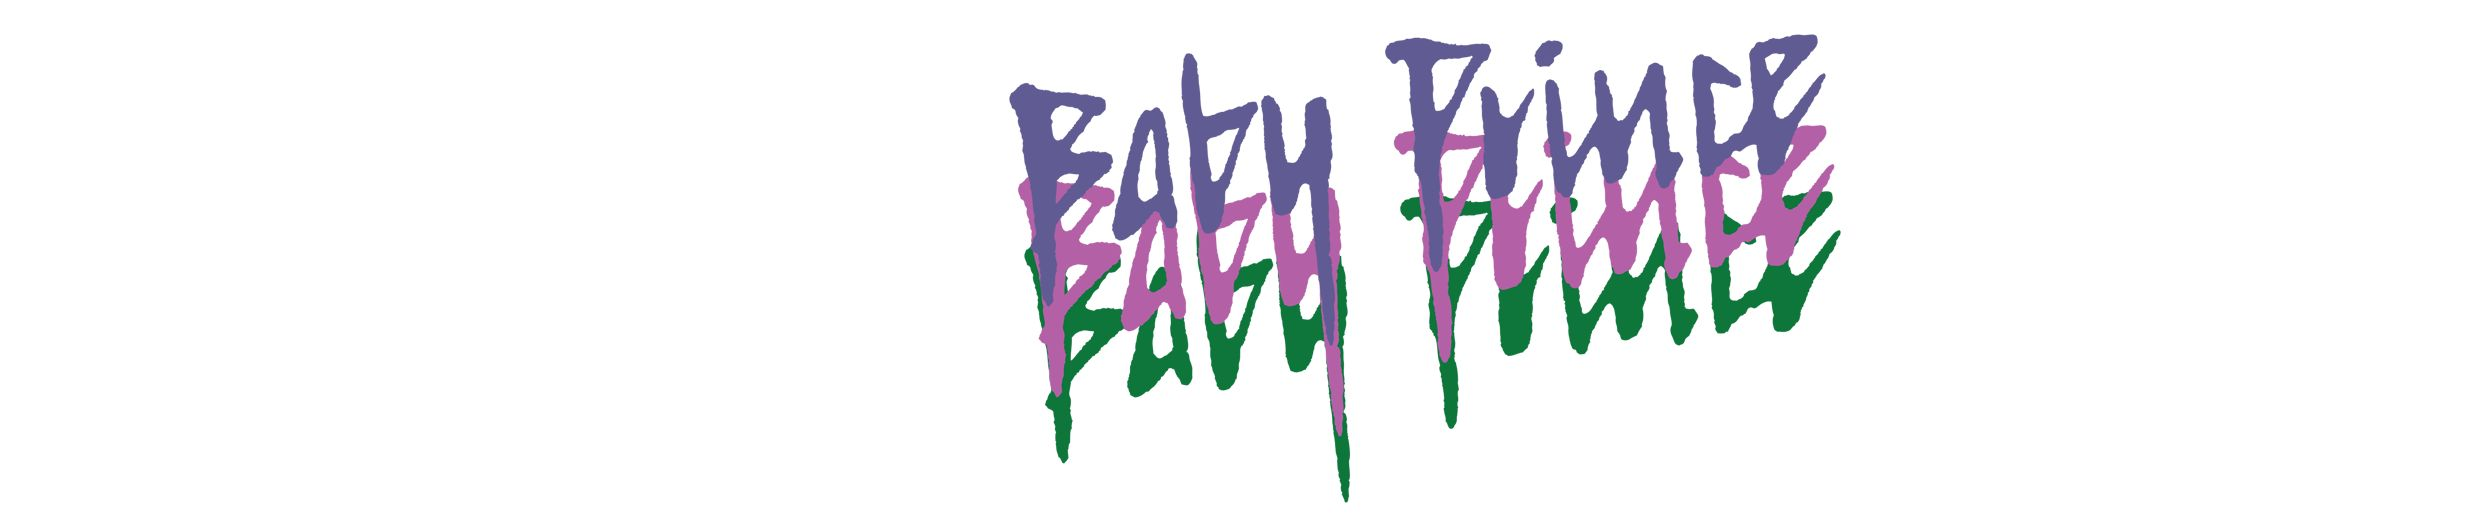 Baby Prince | Free Listening on SoundCloud